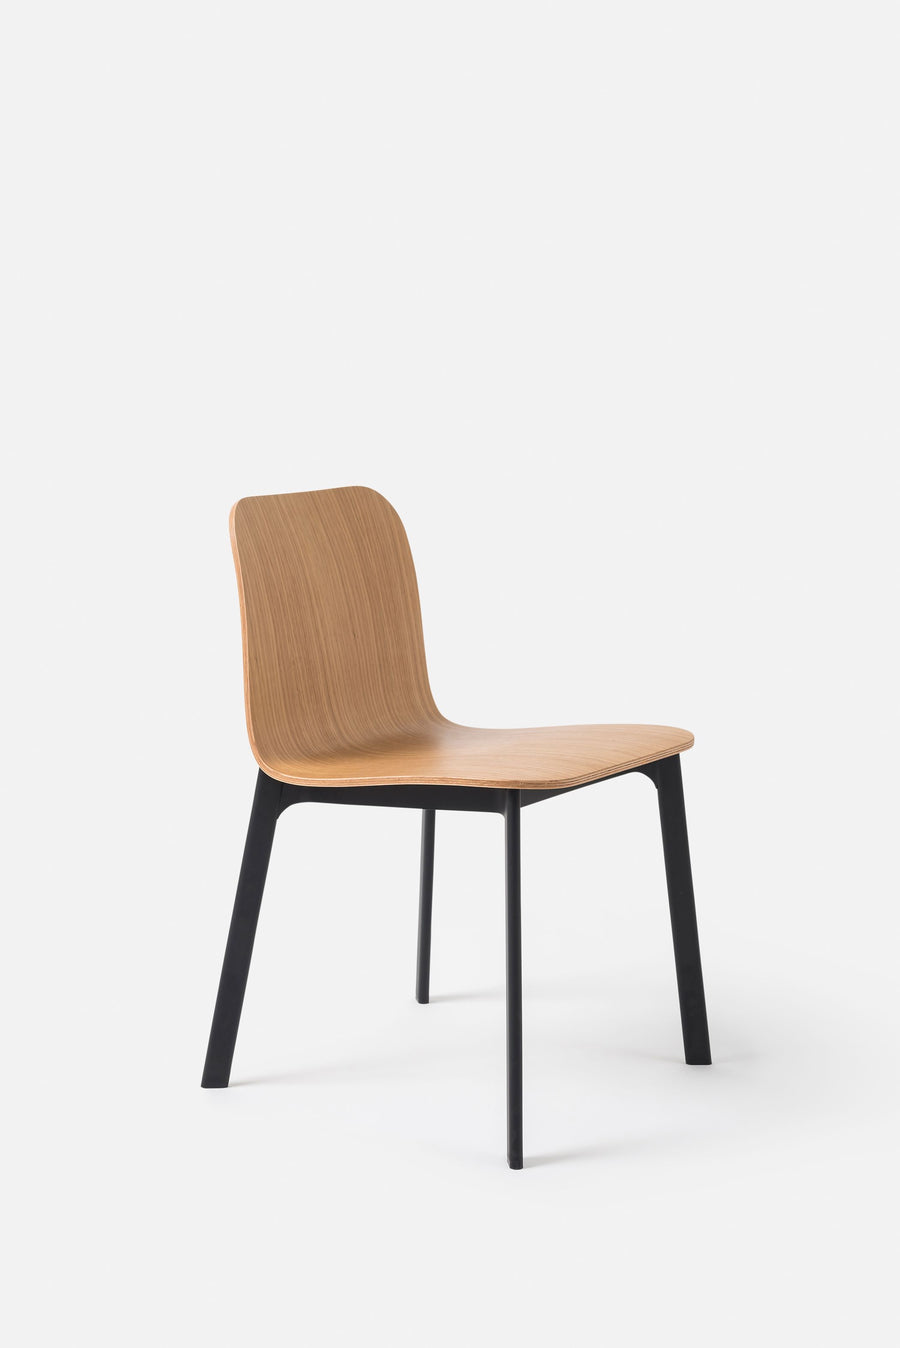 Aspen - oak and black steel dining chair